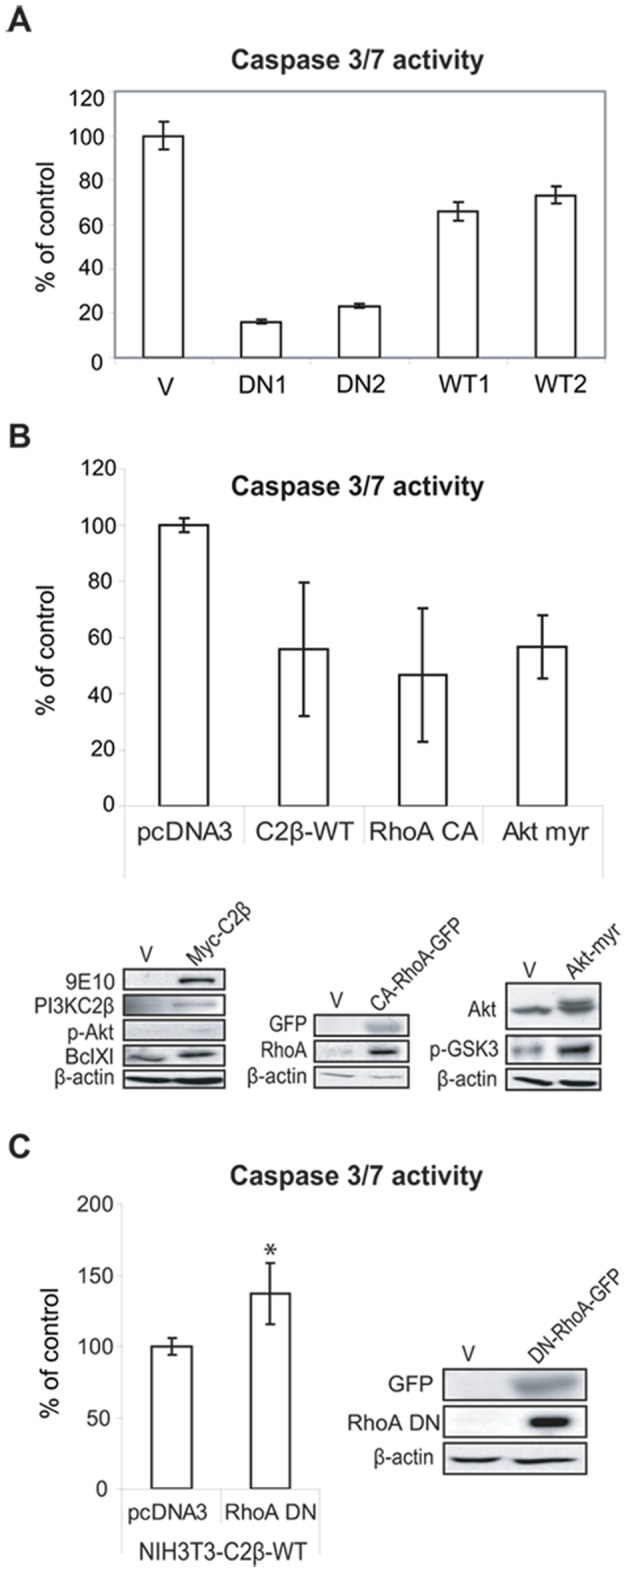 PI3KC2β increases MAPK and Akt signalling downstream of EGFR and PDGFR. (A) and (B) NIH3T3-V, -C2β-DN and -C2β-WT cells were serum-deprived overnight and stimulated for 10 min. with EGF (A) or PDGF (B) as indicated. Cell lysates were analysed by immunobloting and MAPK and Akt pathway activation was assessed with indicated phospho-specific antibodies. (C) and (D) Lysates of NIH3T3-V, -C2β-DN and -C2β-WT cells grown in 10% FCS were analysed for activated signalling molecules implicated in the cell cycle control and caveolae formation such as p53, Bcl2, PTEN and caveolin 1, −2. WT1, −2 and DN1, −2 indicate individual clones.